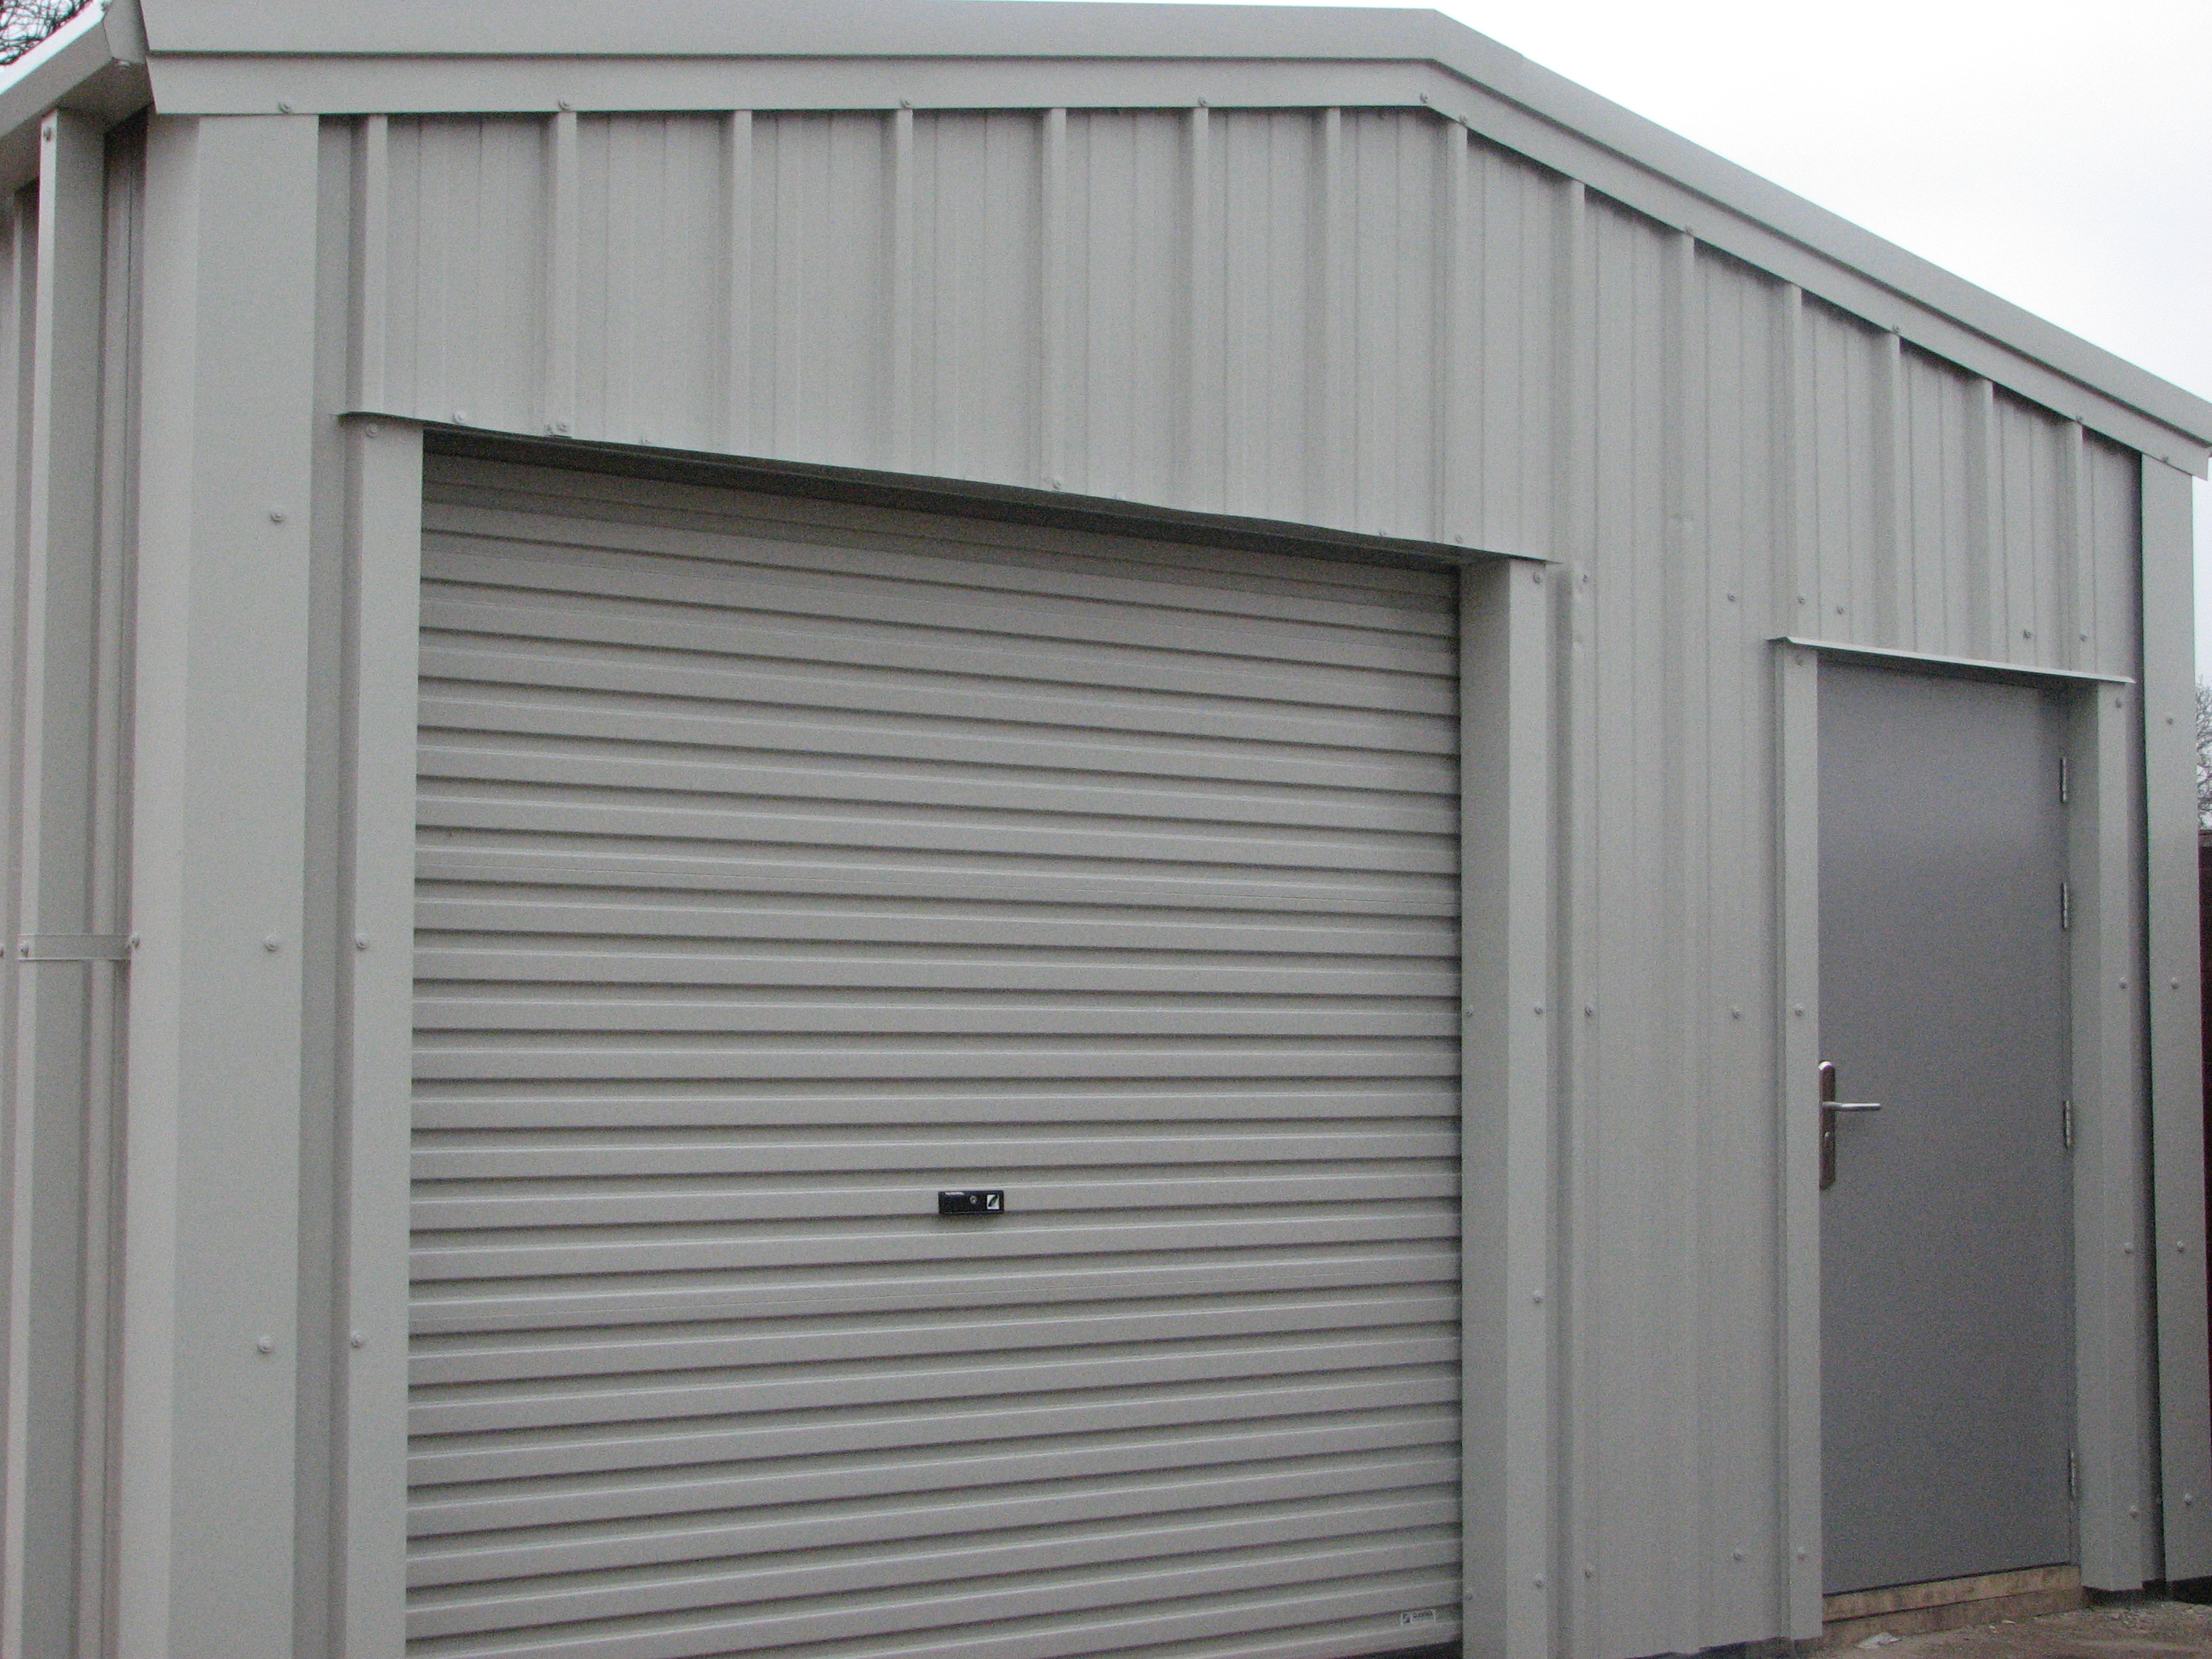 over garage insulated wright up and sectional doors steelgaragedoors steel